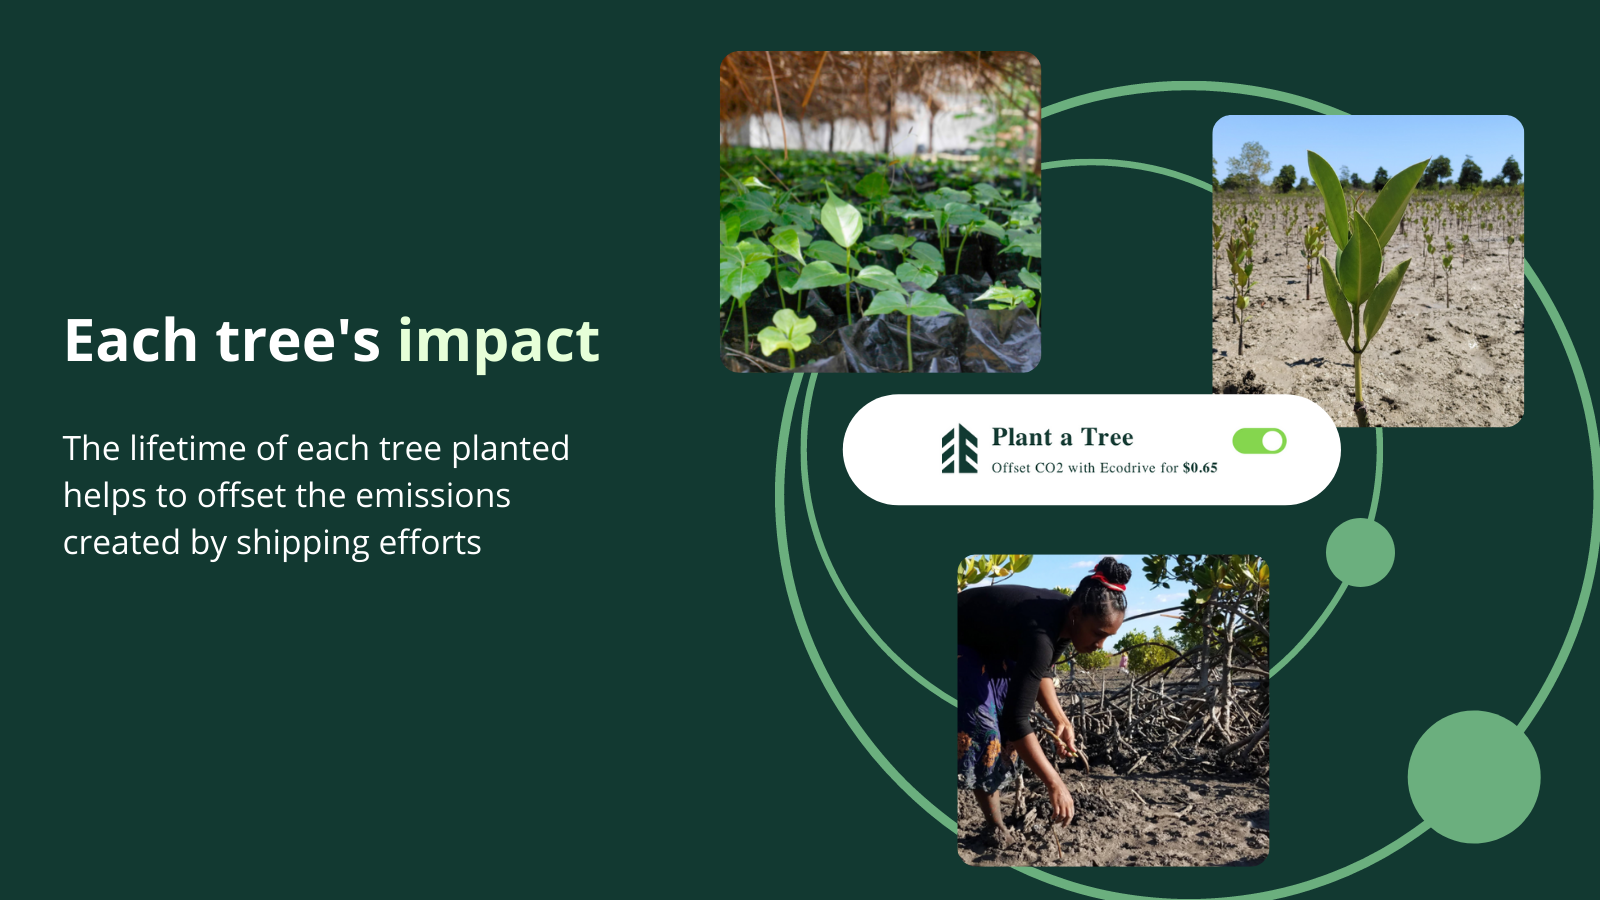 Each tree will make order's climate positive & alleviate poverty